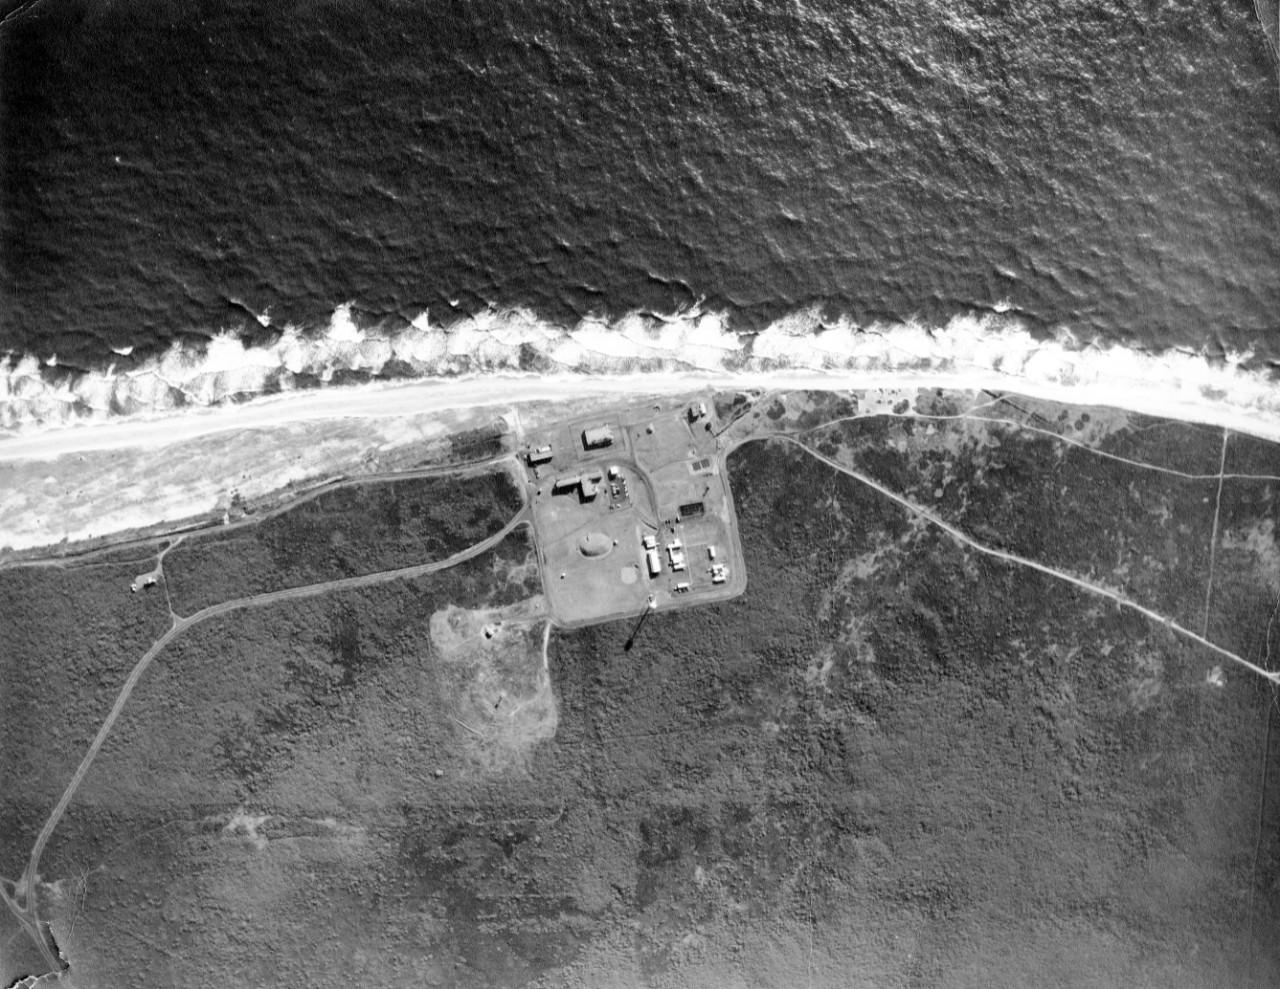 Collection of seven images (several are copies) of aerial views of facilities and beach erosion at the Naval Facility Nantucket, MA, March 1969.